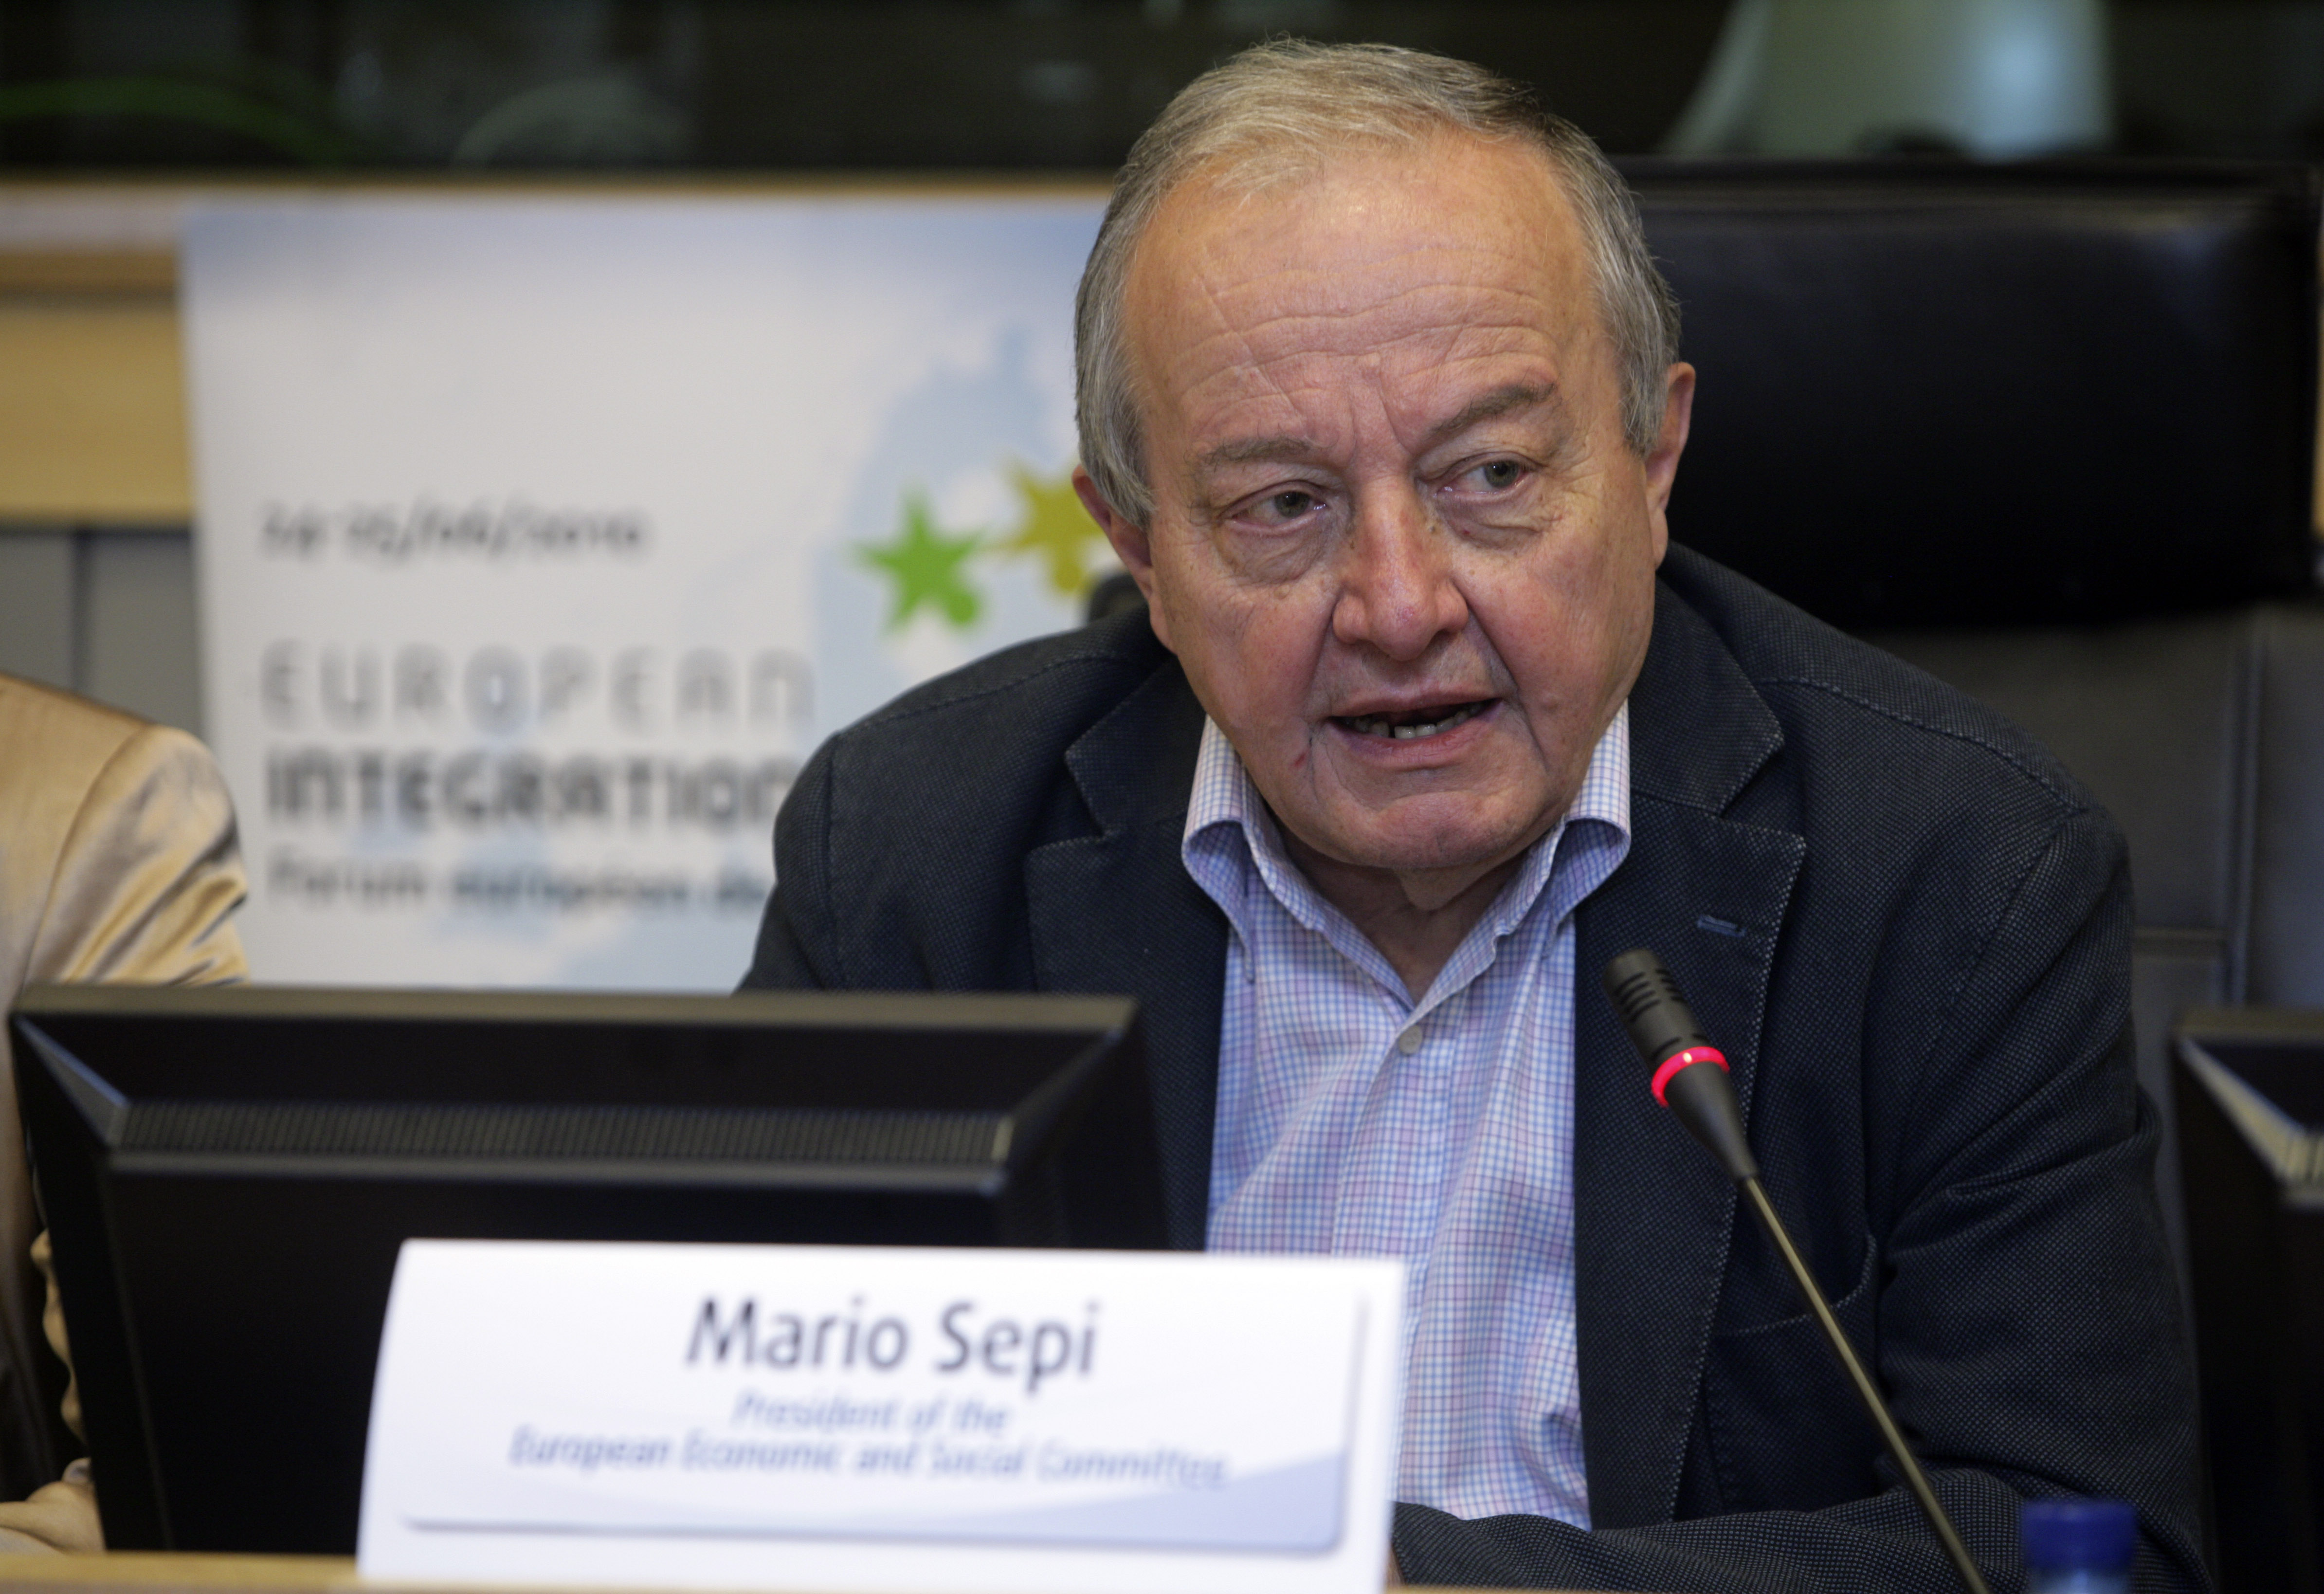 02. Mario Sepi, EESC President, in the opening session